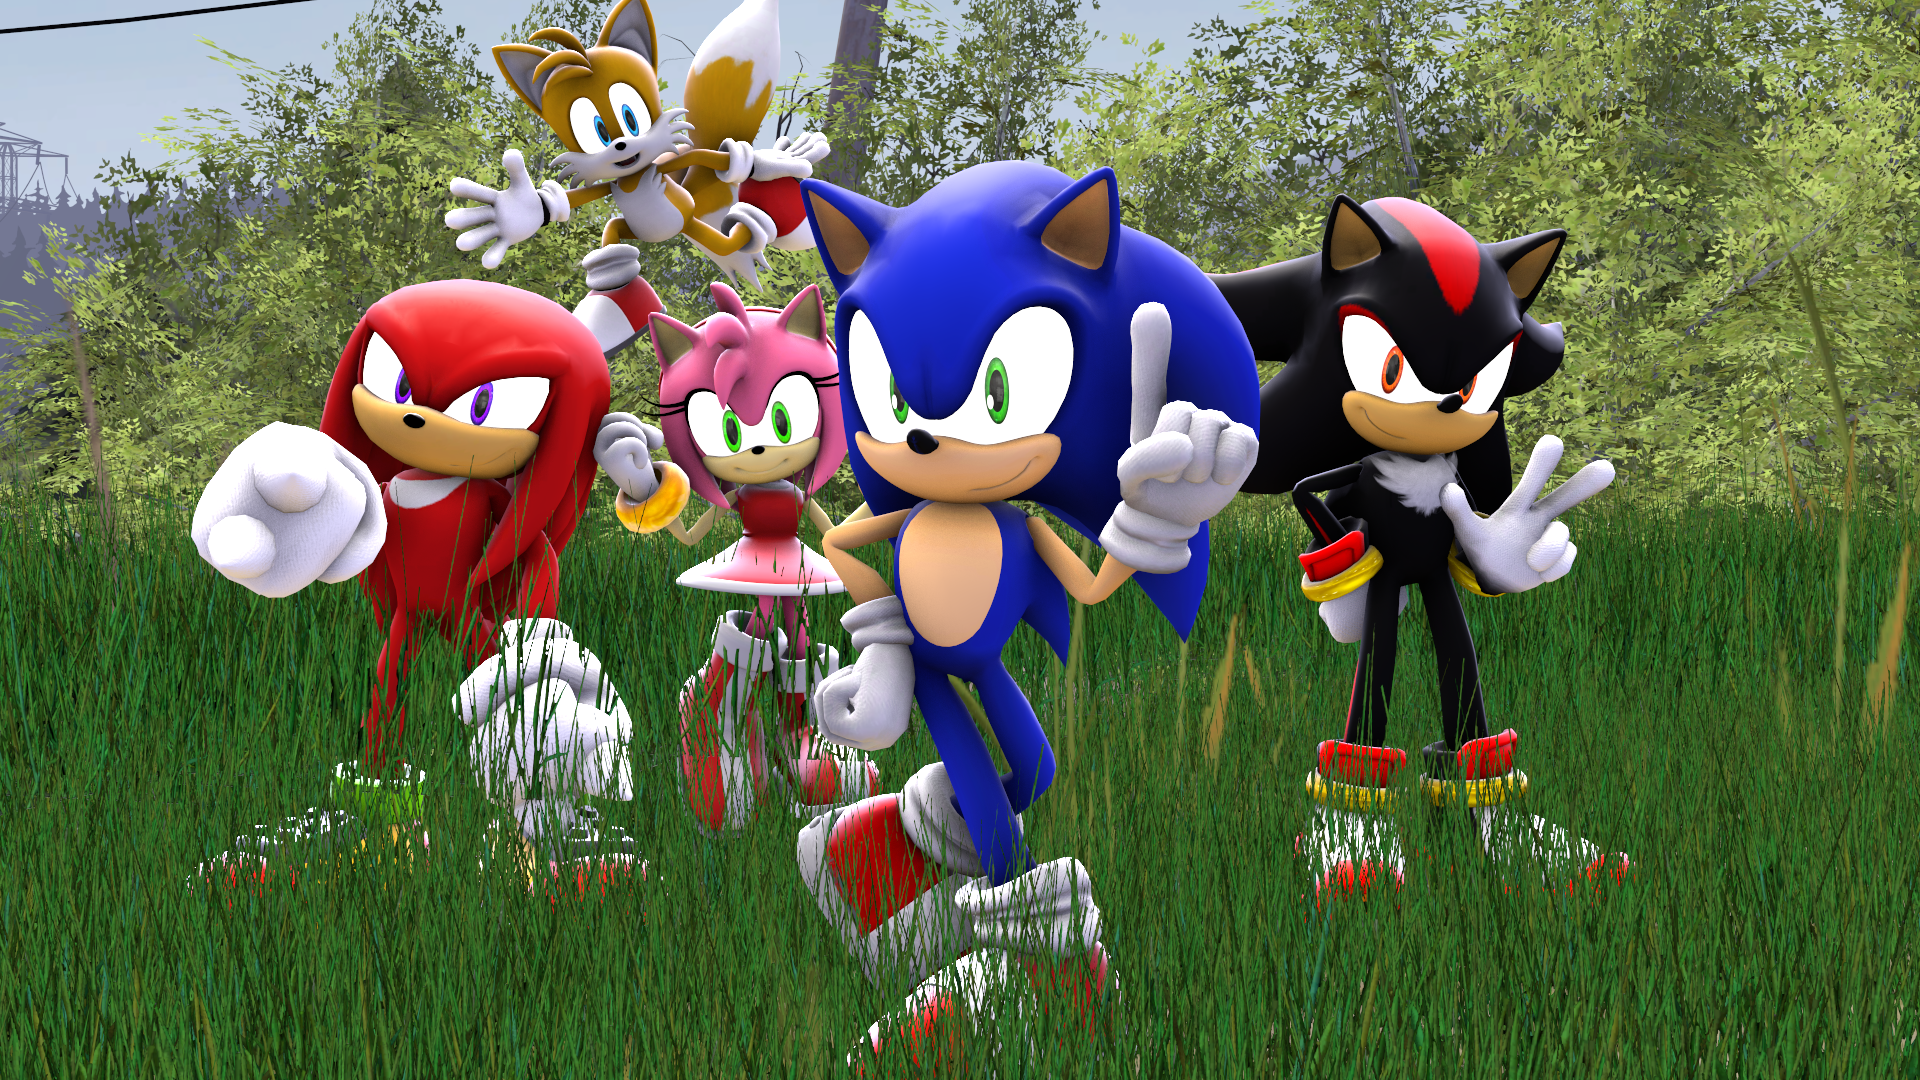 Sonic the hedgehog 2 wallpaper